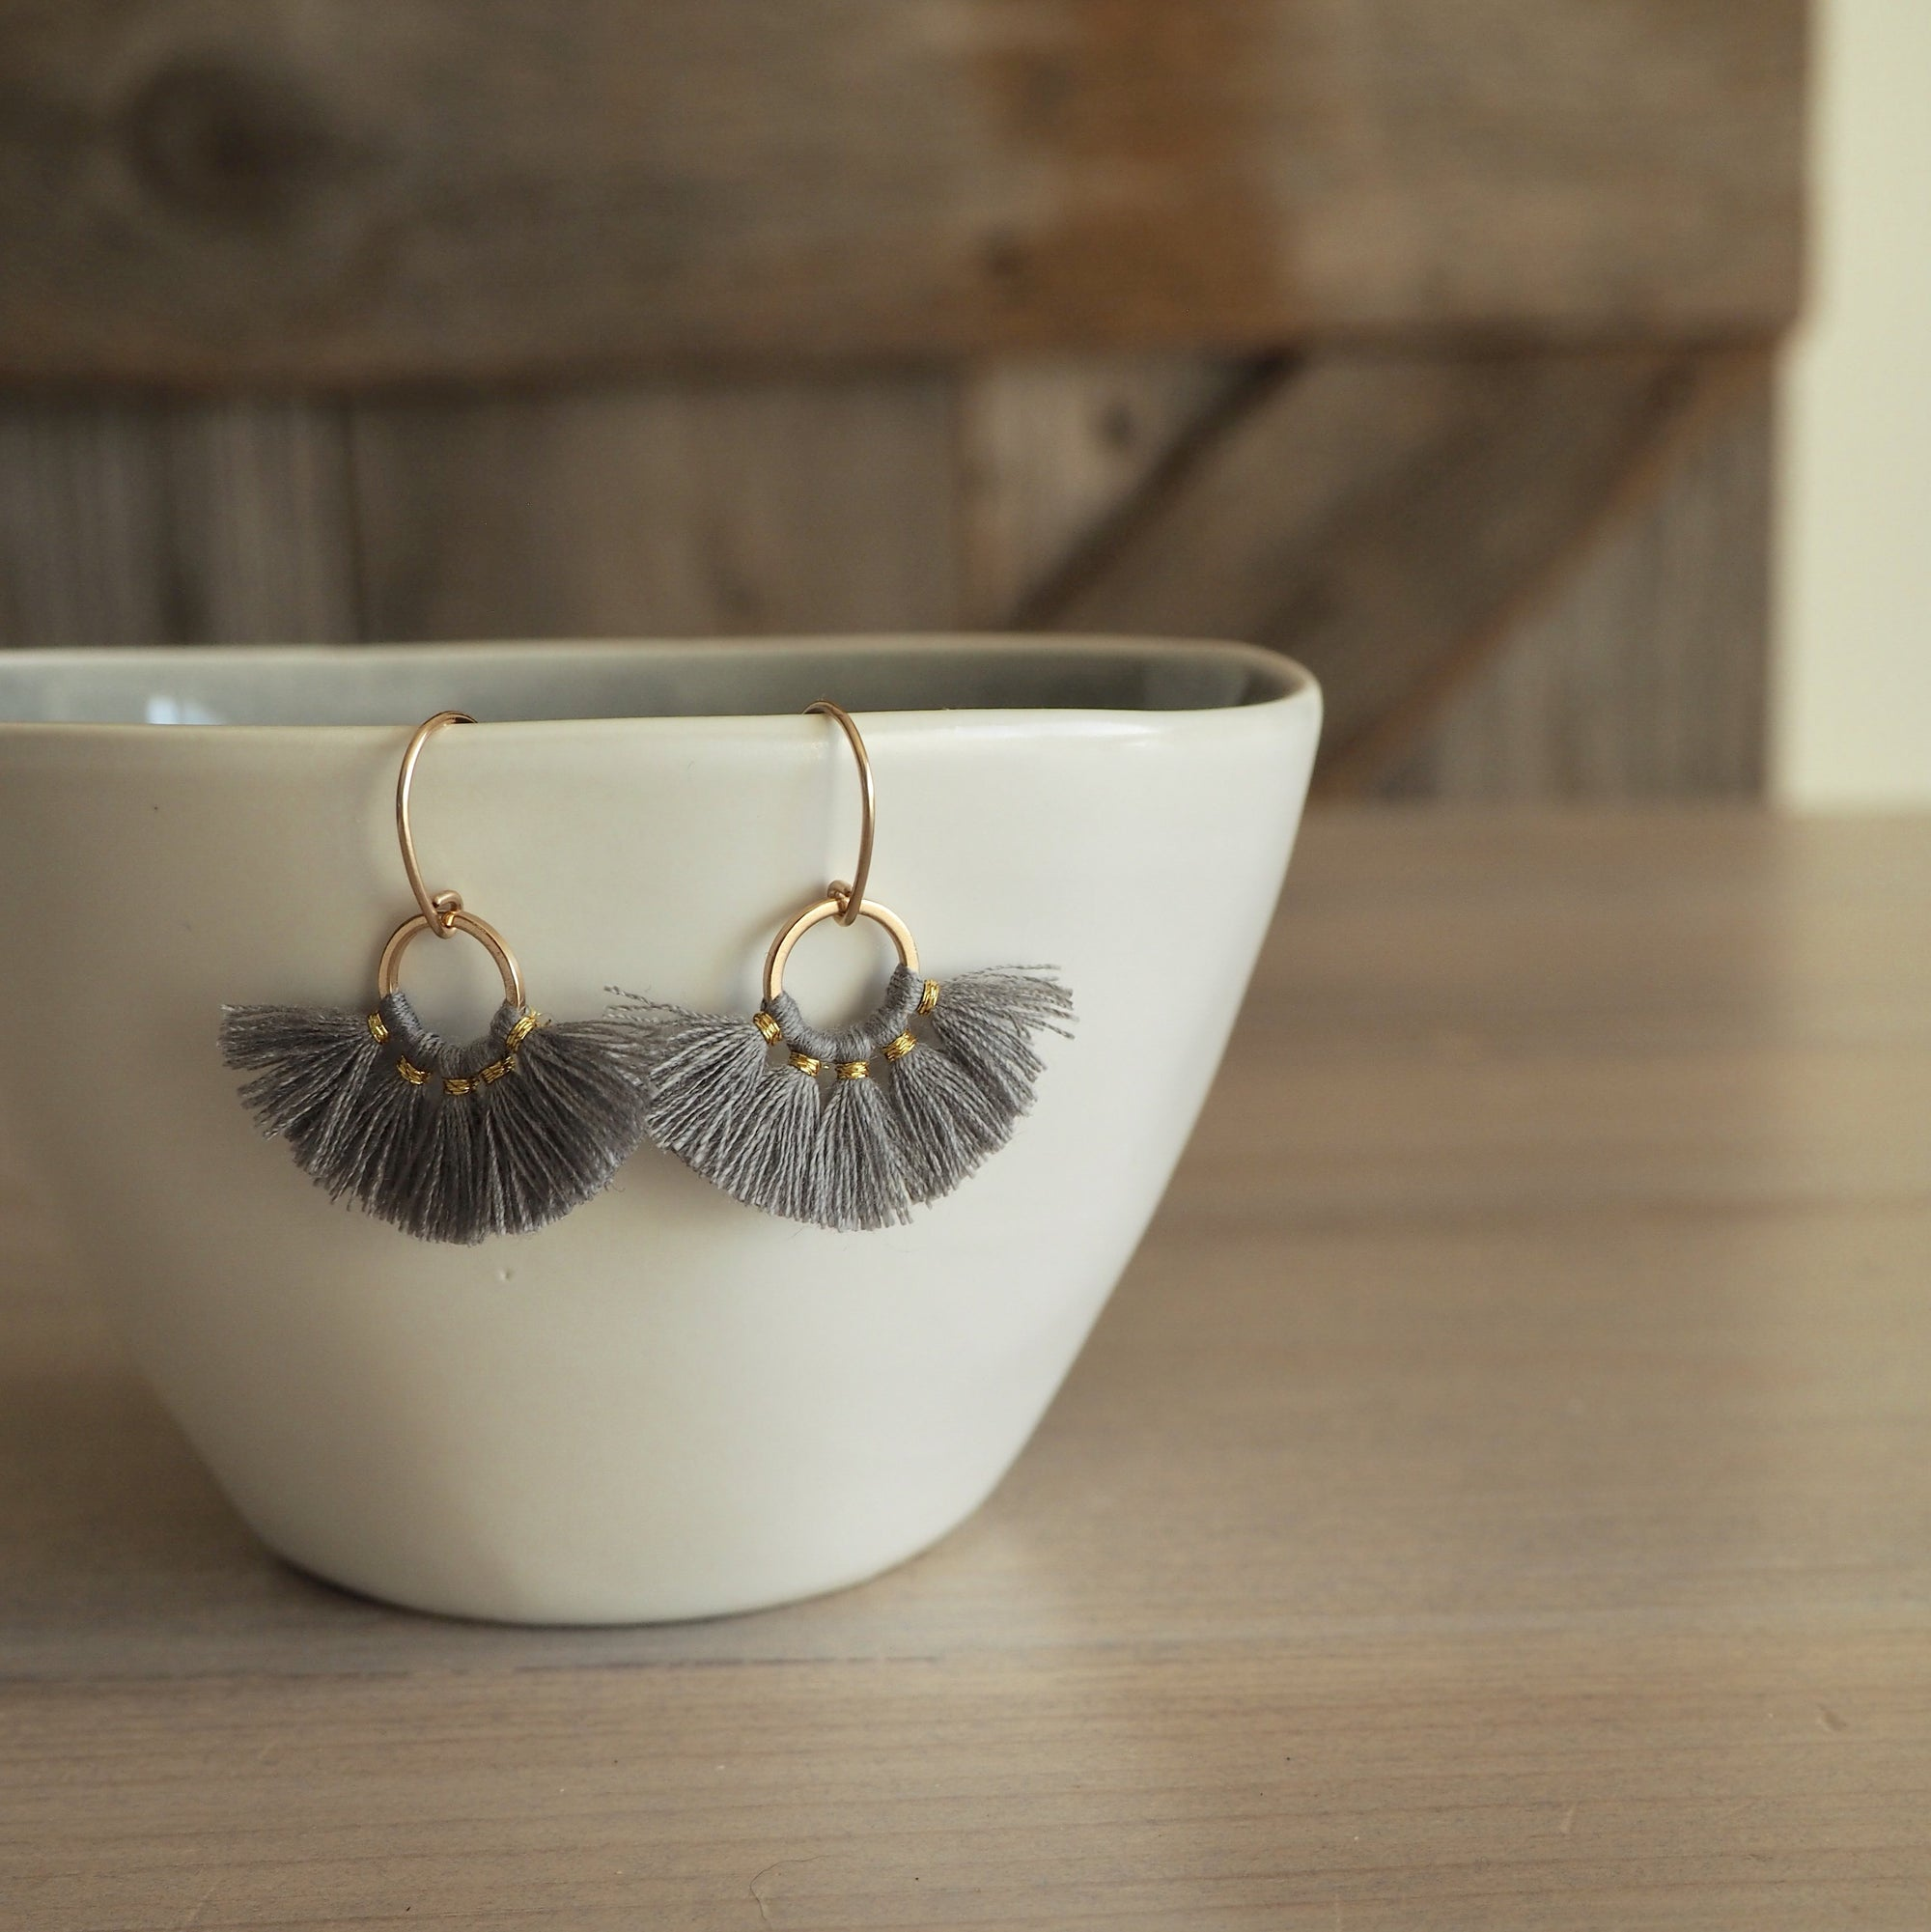 Grey tassel earrings with 14K gold filled earwire in Canada